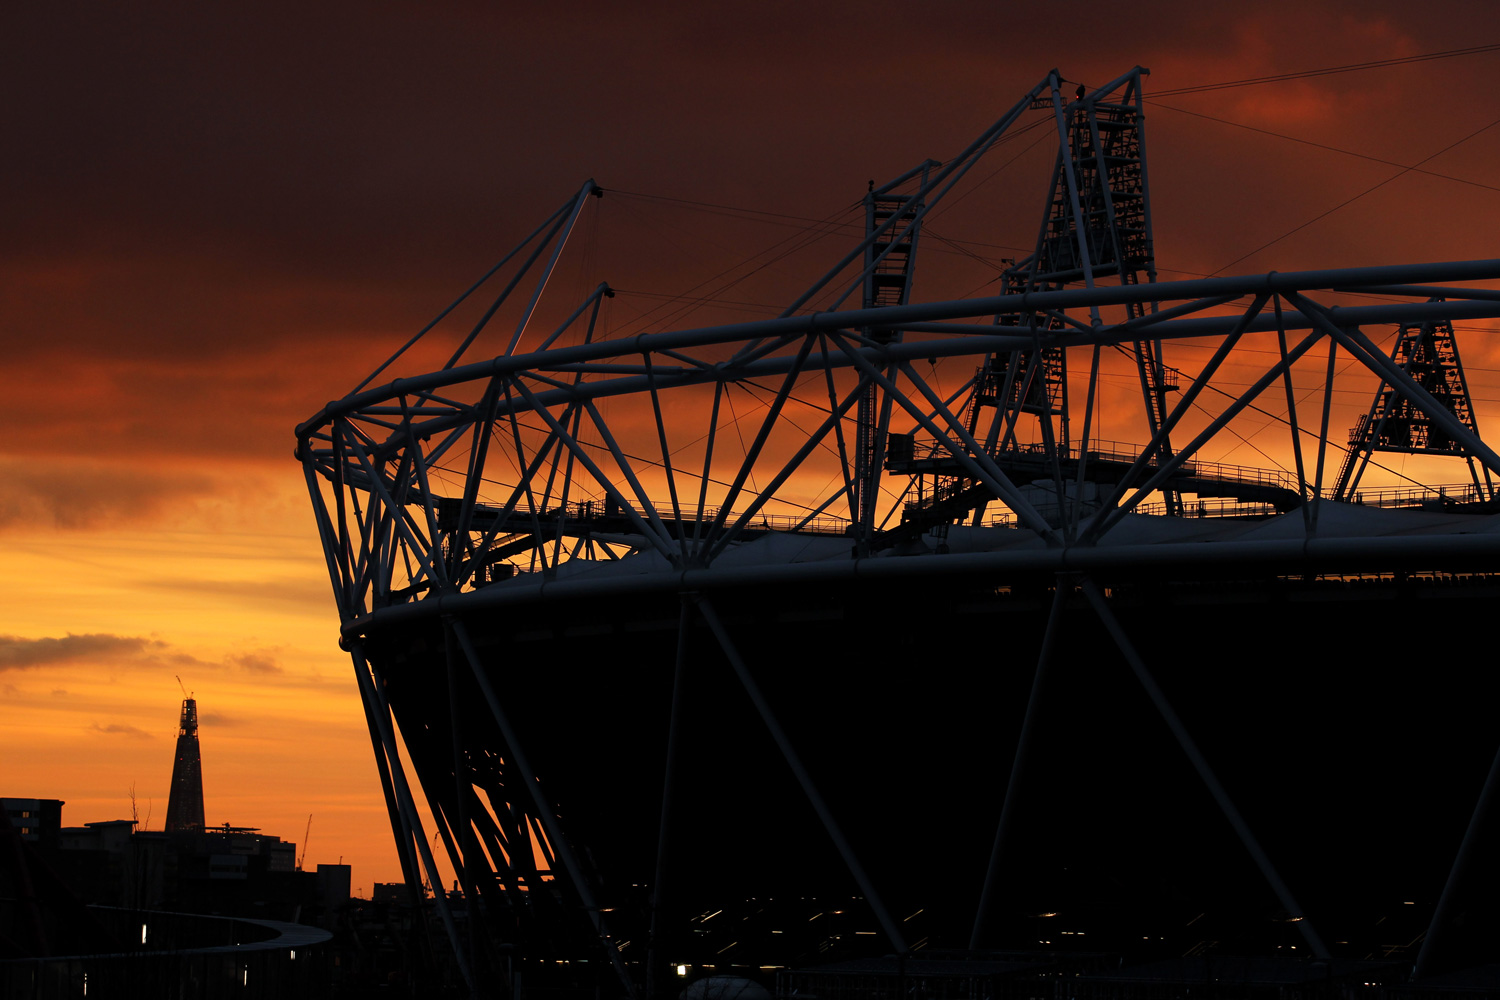 Feb. 26, 2012. The view of the Olympic Stadium at sunset during the FINA Diving World Cup and Olympic Test Event in London.